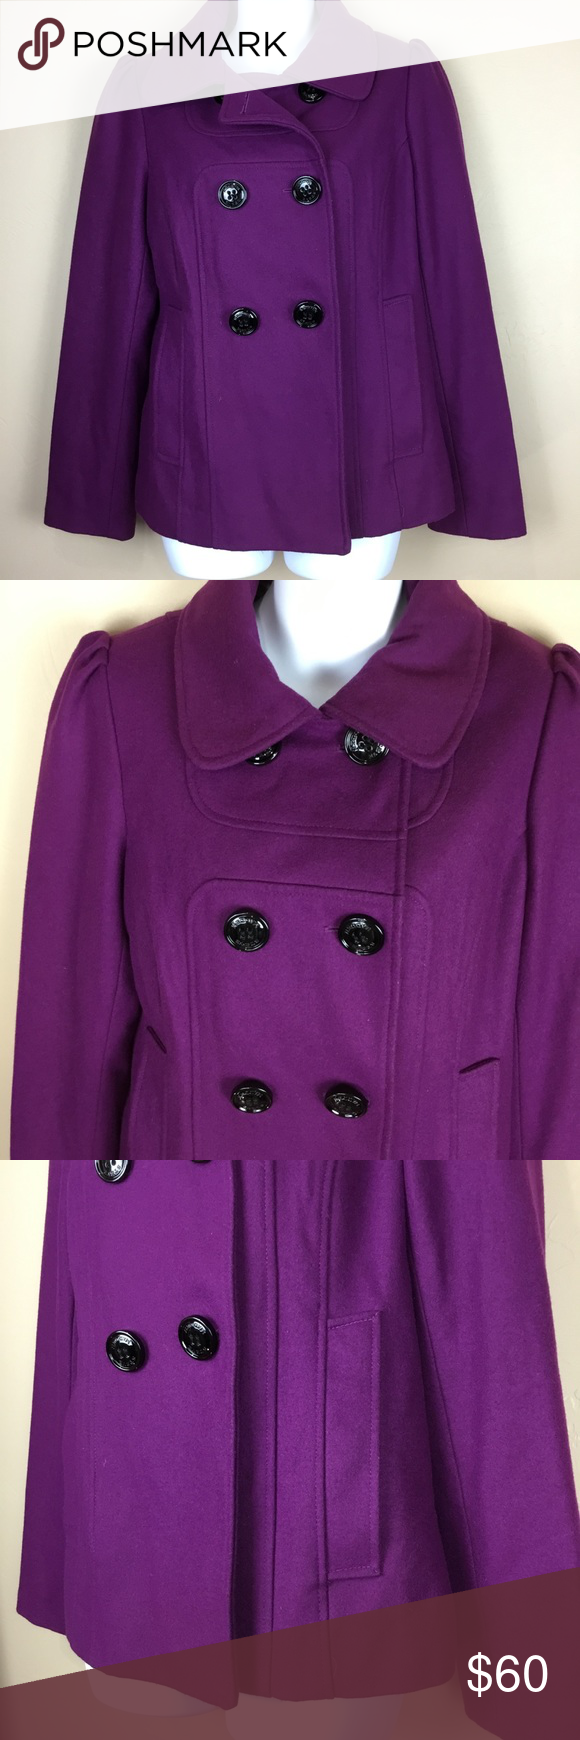 Steve Madden Double Breasted Purple Pea Coat SZ M Steve